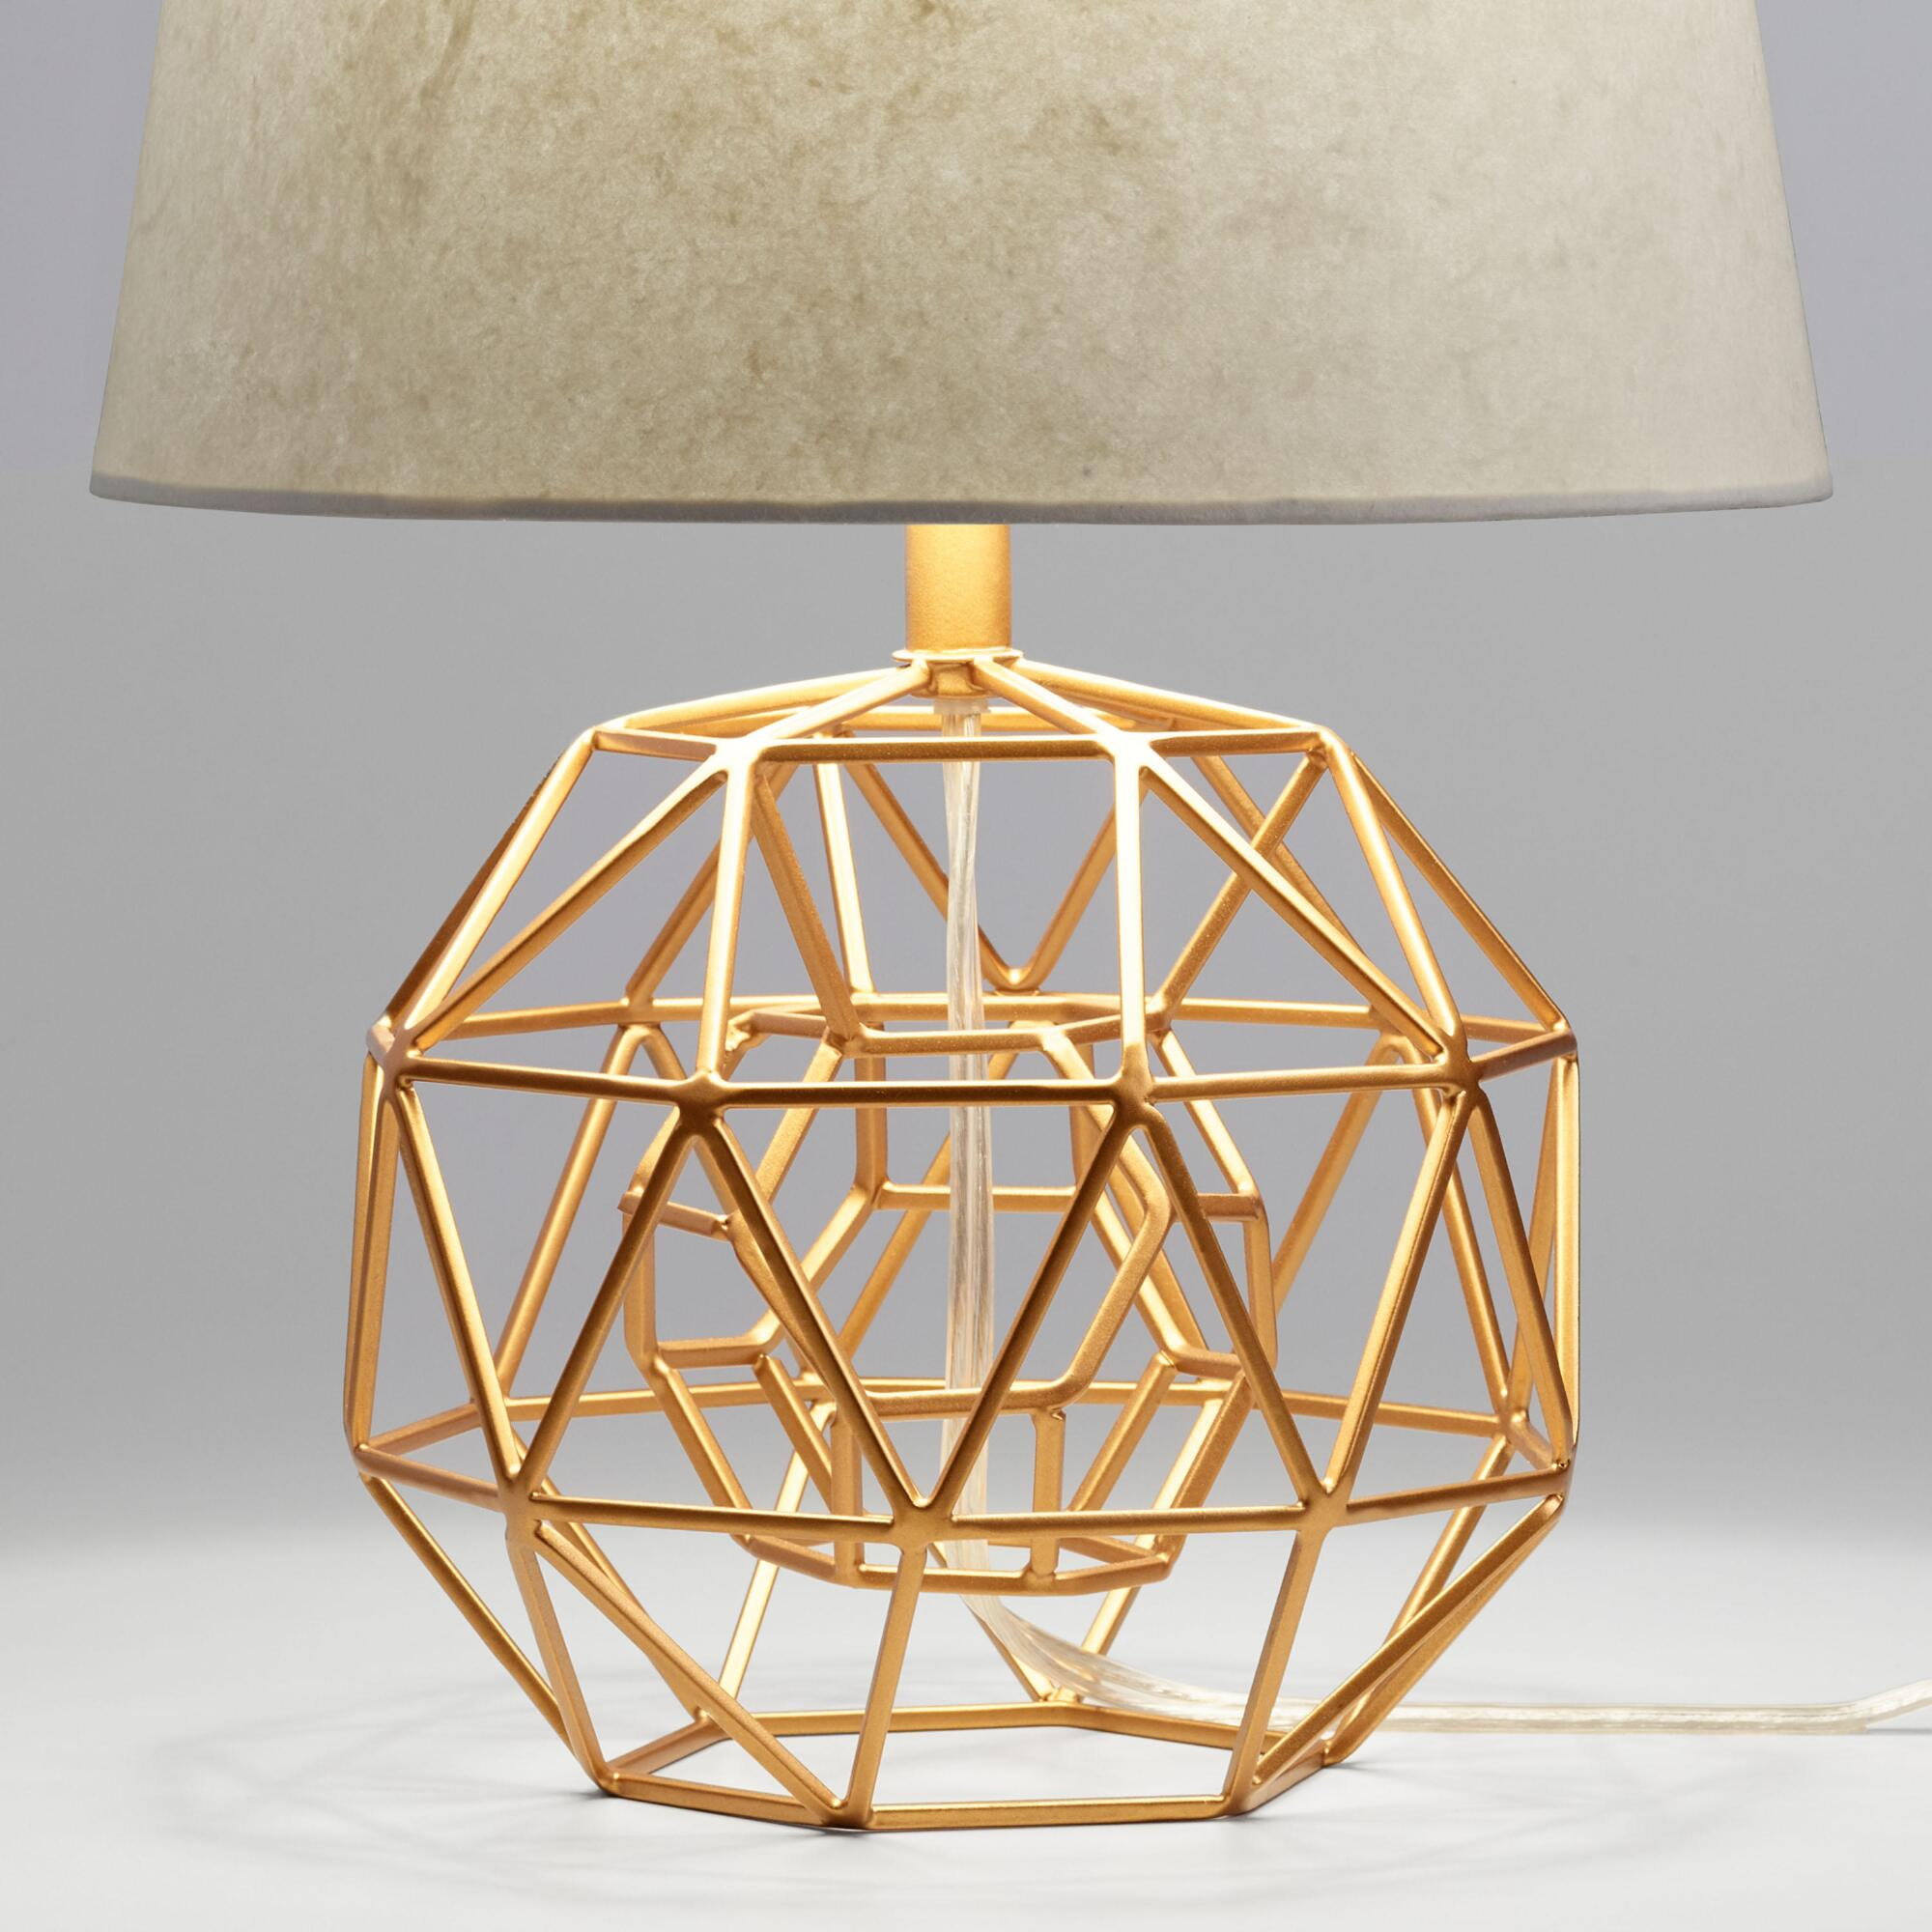 accent lighting unique table lamps world market iipsrv fcgi miniature gold geo globe lamp base comfortable porch furniture retro style side tables great very narrow sofa storage